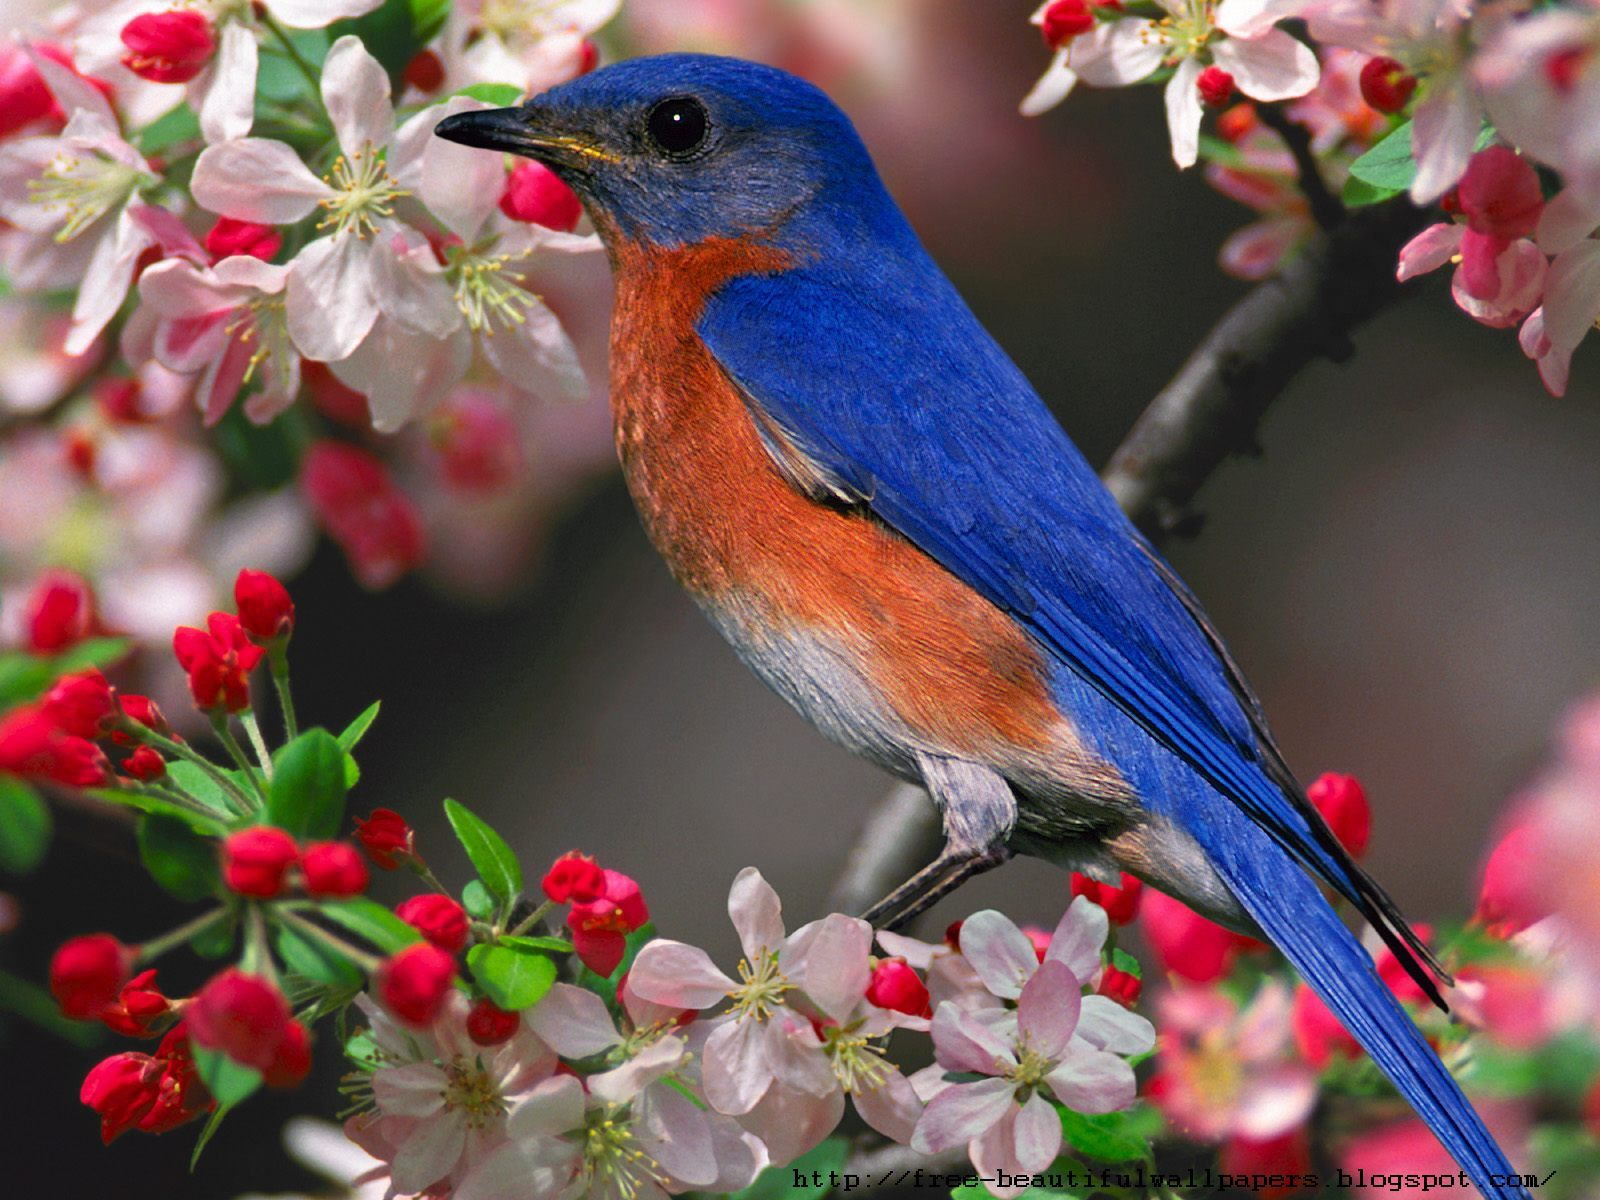 Wallpaper download nice - Beautiful Birds Wallpaper Free Download For You Very Nice Collection Wallpapers Download